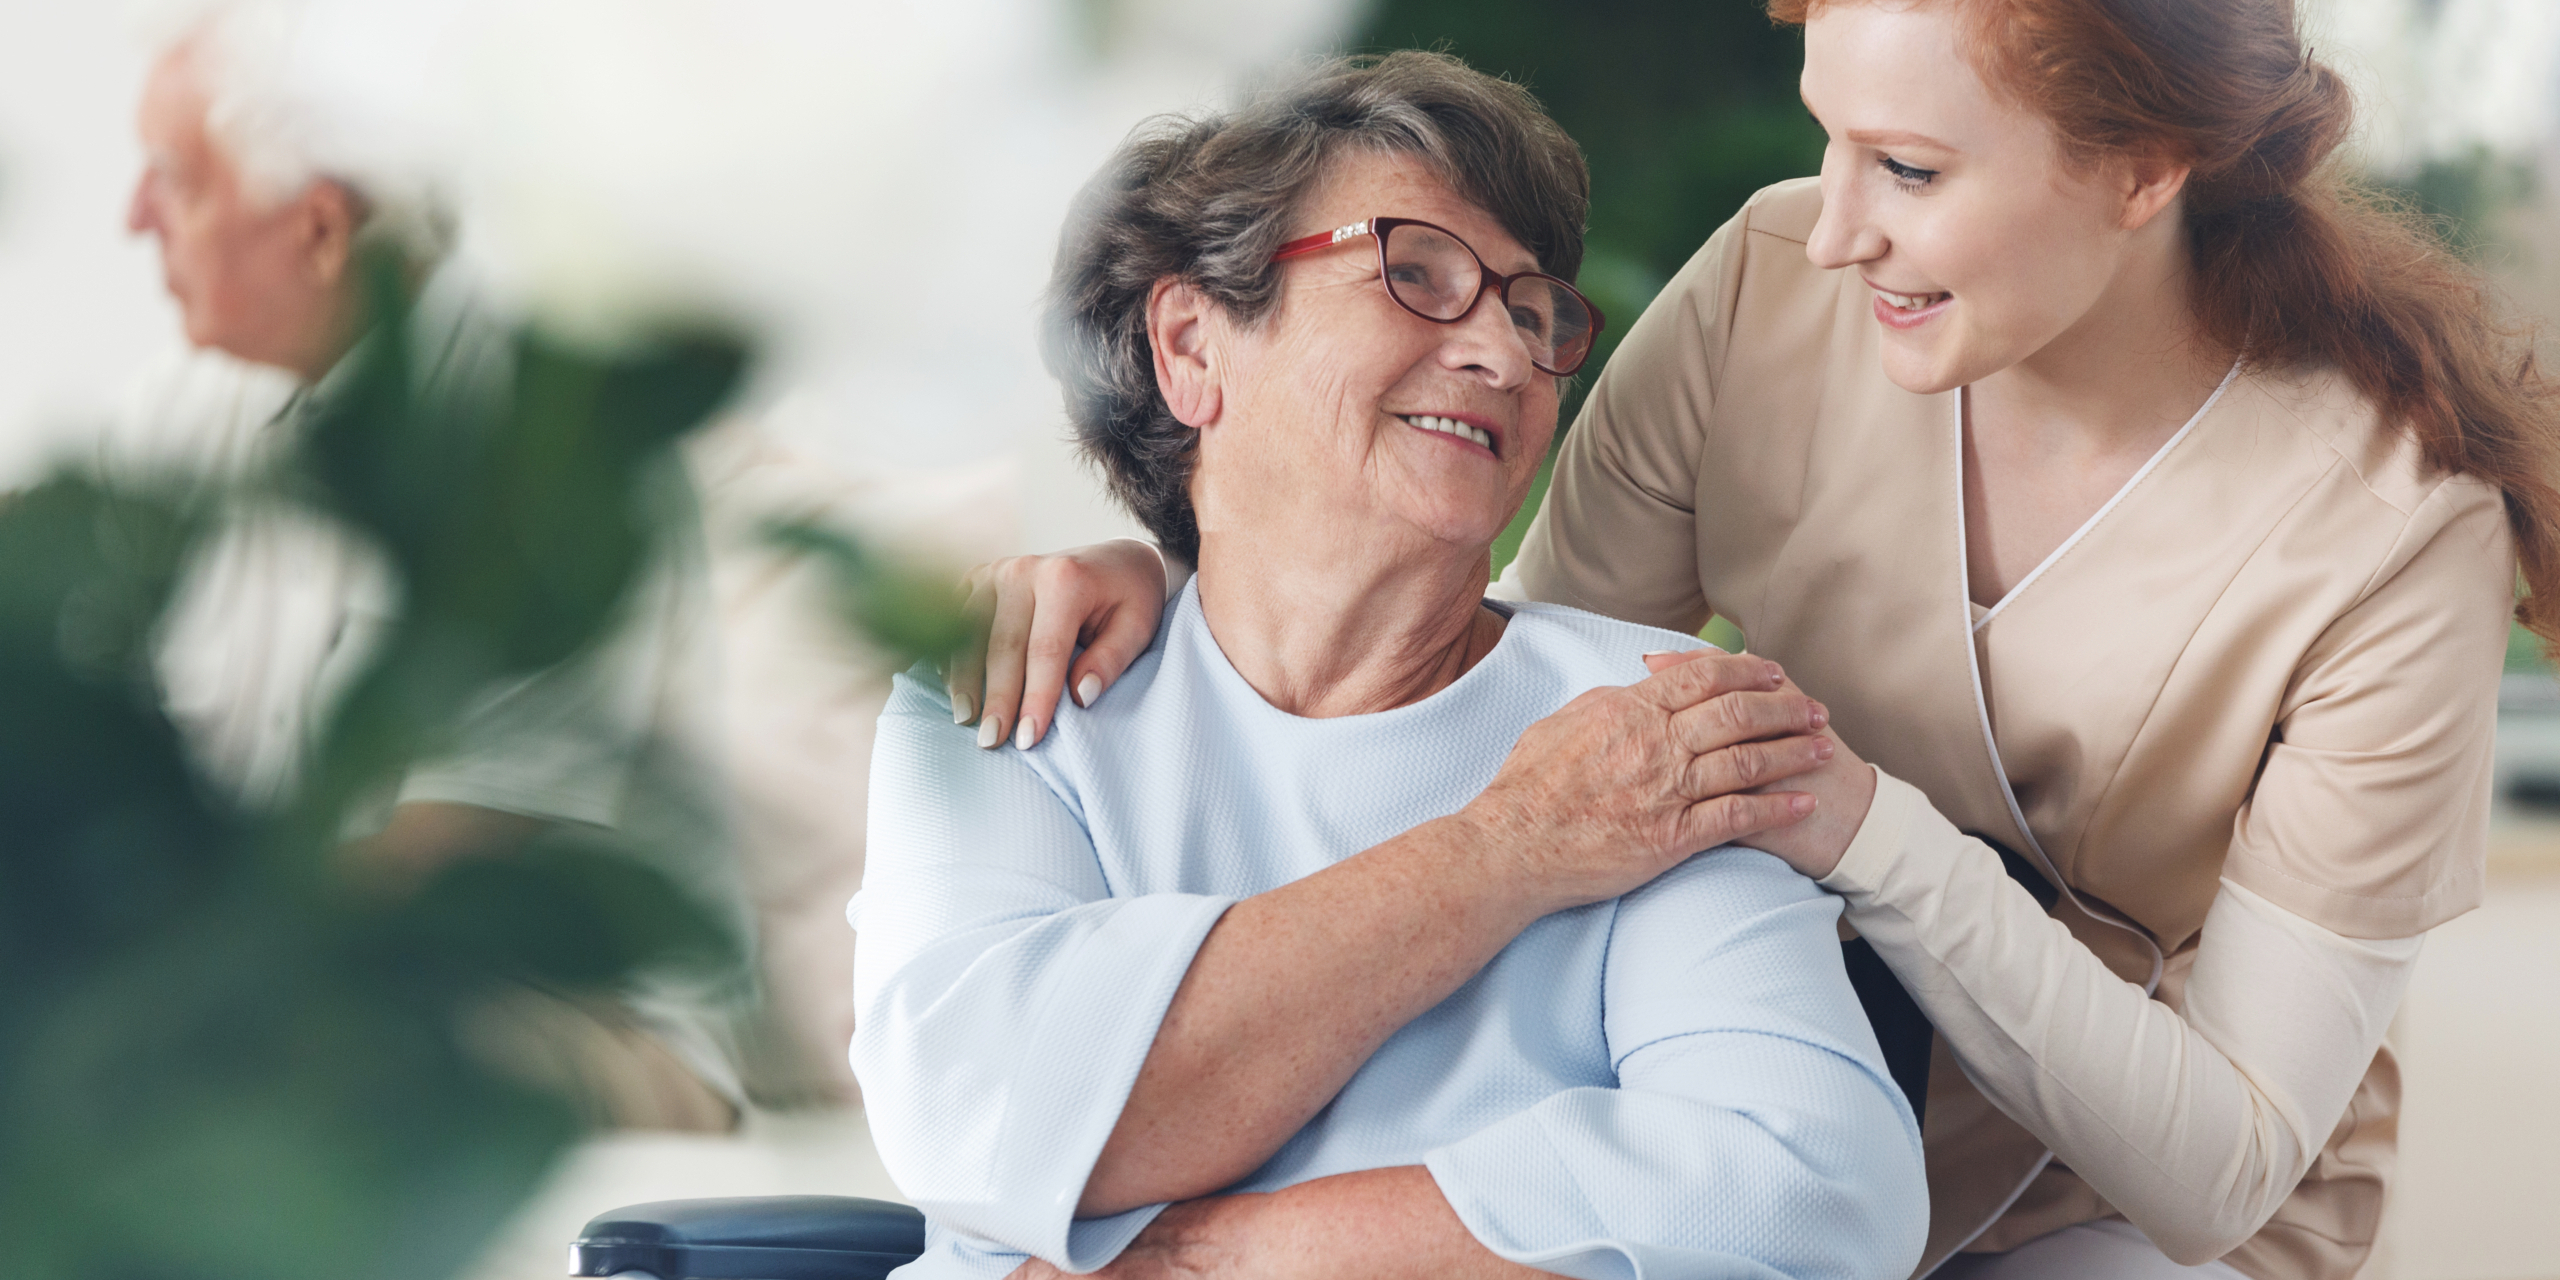 Manual-Handeling-of-Patients-in-Care-Homes